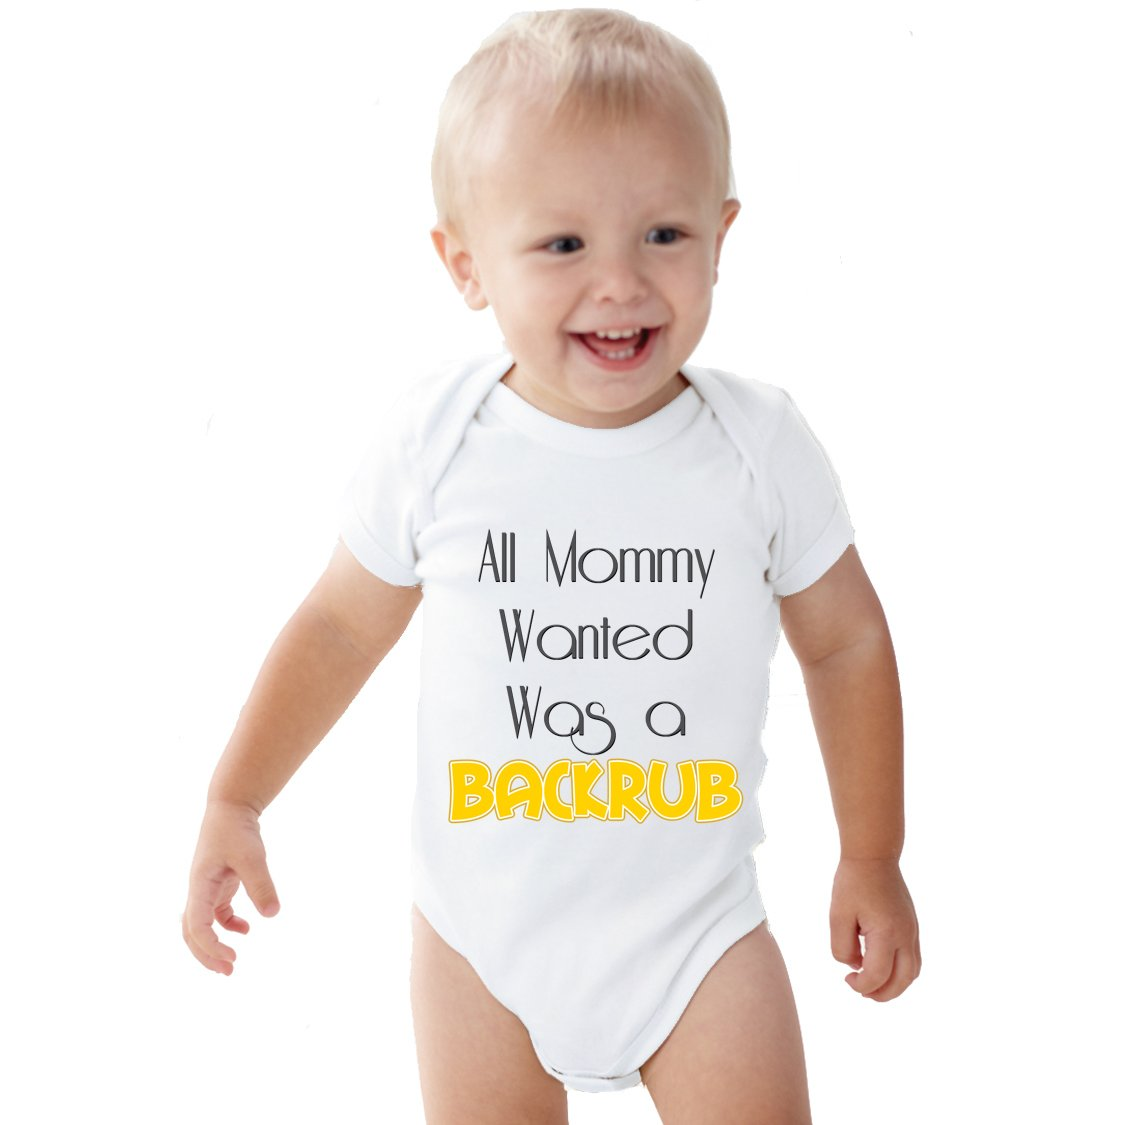 All Mommy Wanted Backrub Baby Onesie Nany Crafts